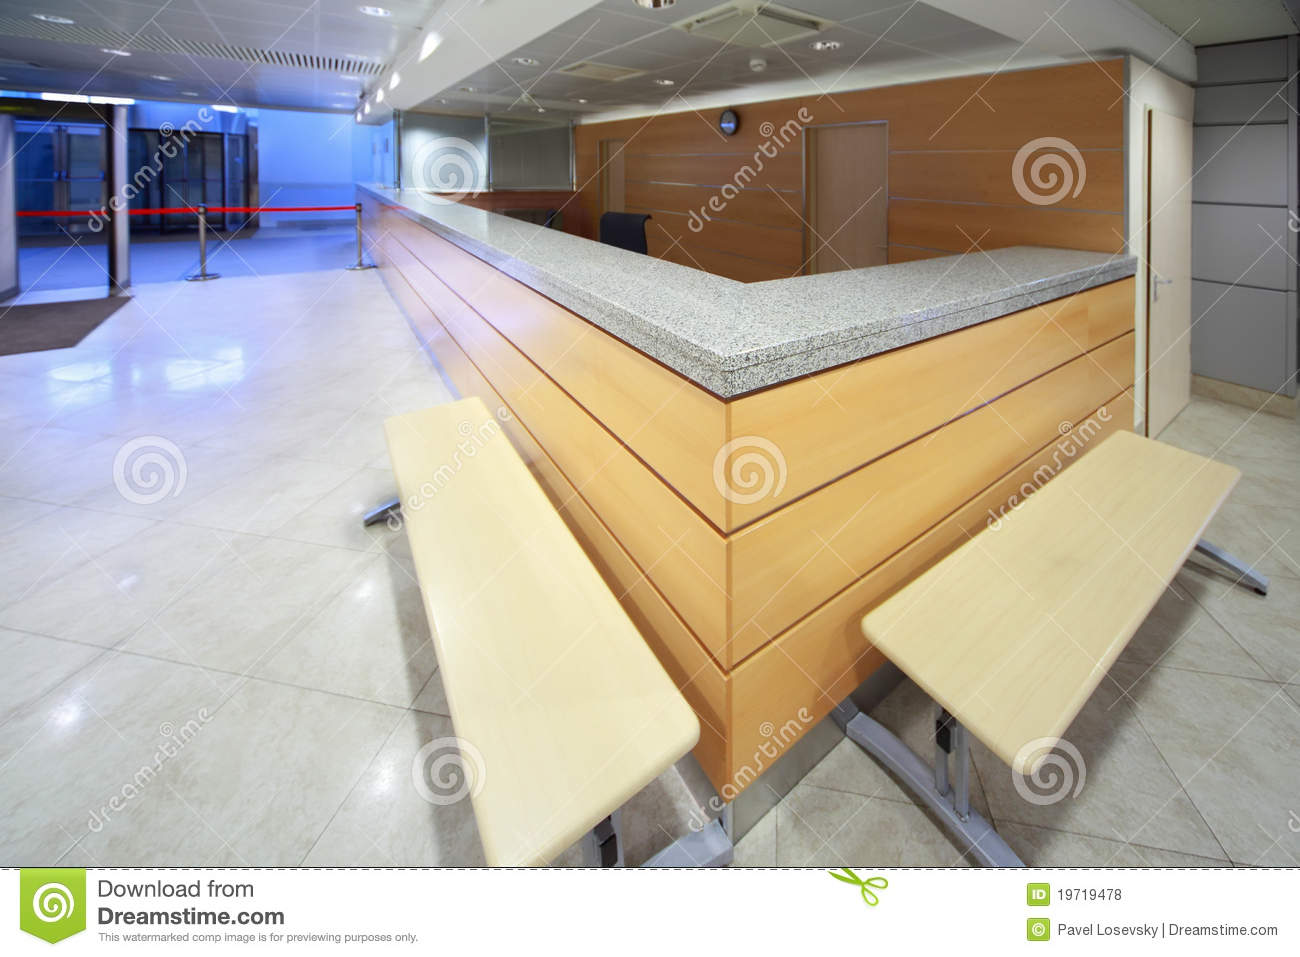 Royalty Free Stock Photos: Reception desk on included in establishment